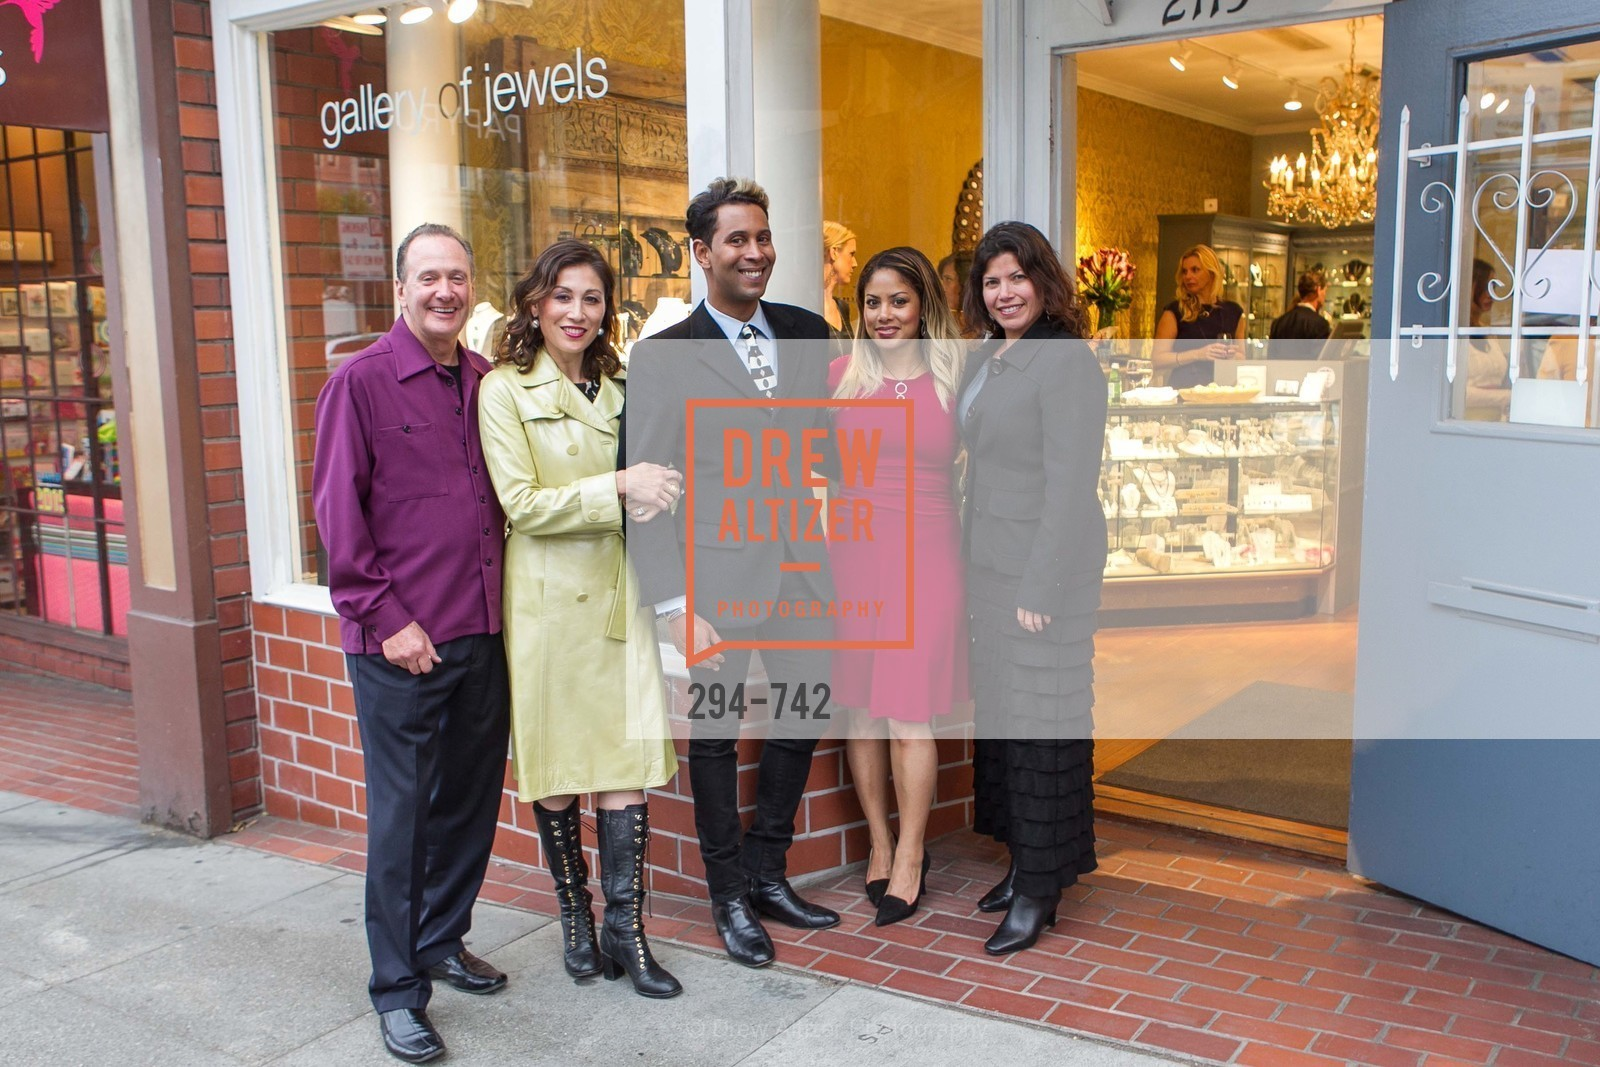 Bill Hoover, Michelle Pender, Emillio Mesa, Alyssa Etzel, LUXETIGERS & GALLERY OF JEWELS Benefit for Dress for Success, US, May 20th, 2015,Drew Altizer, Drew Altizer Photography, full-service agency, private events, San Francisco photographer, photographer california